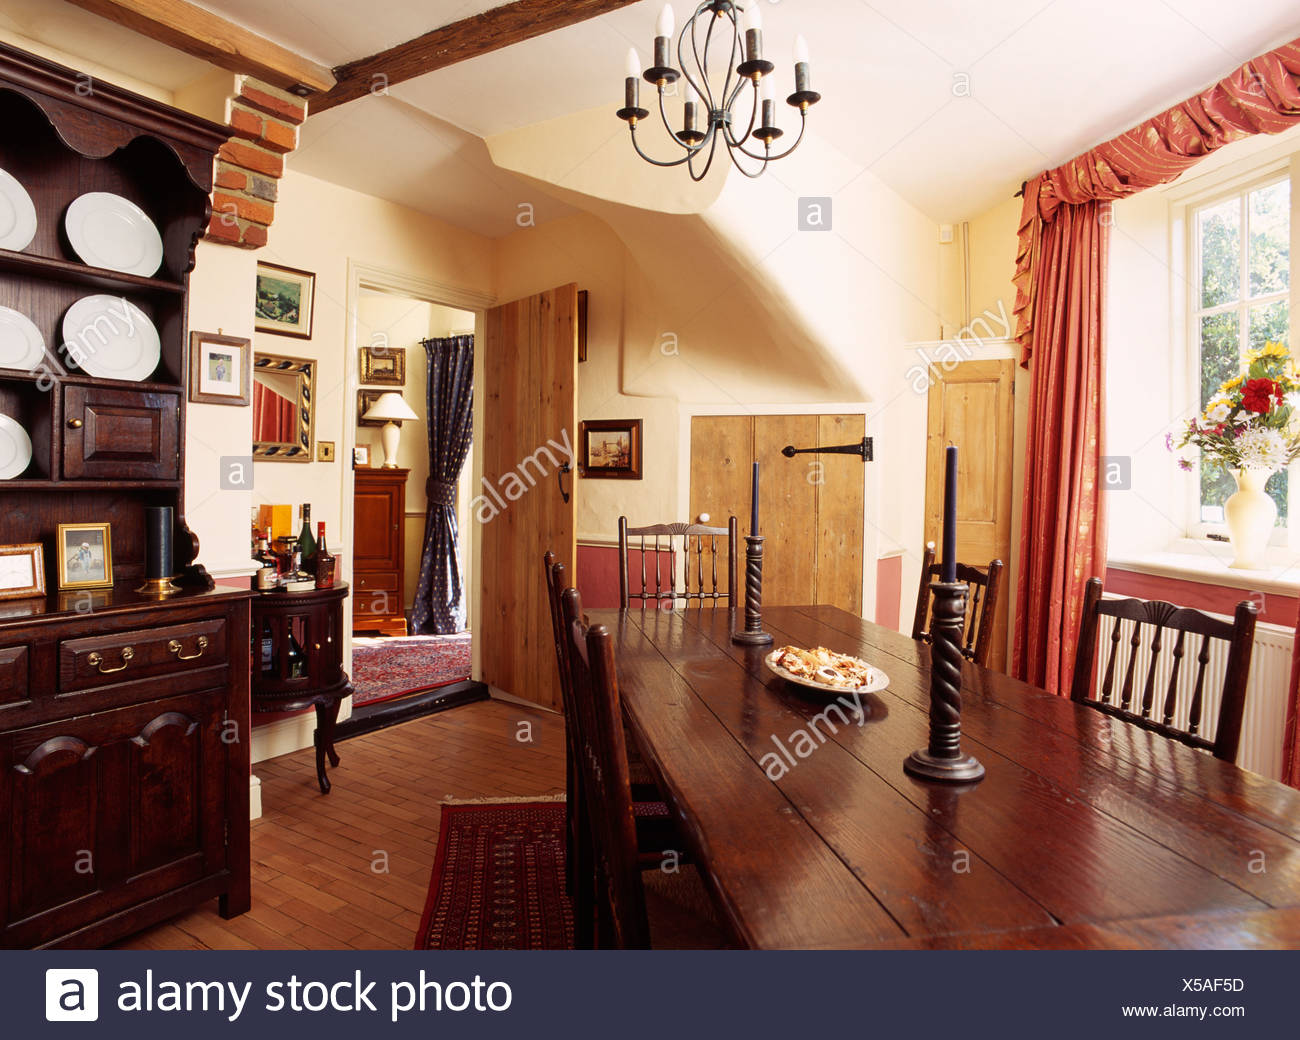 Antique rectangular wooden table and chairs in country diningroom with wooden floor - Stock Image